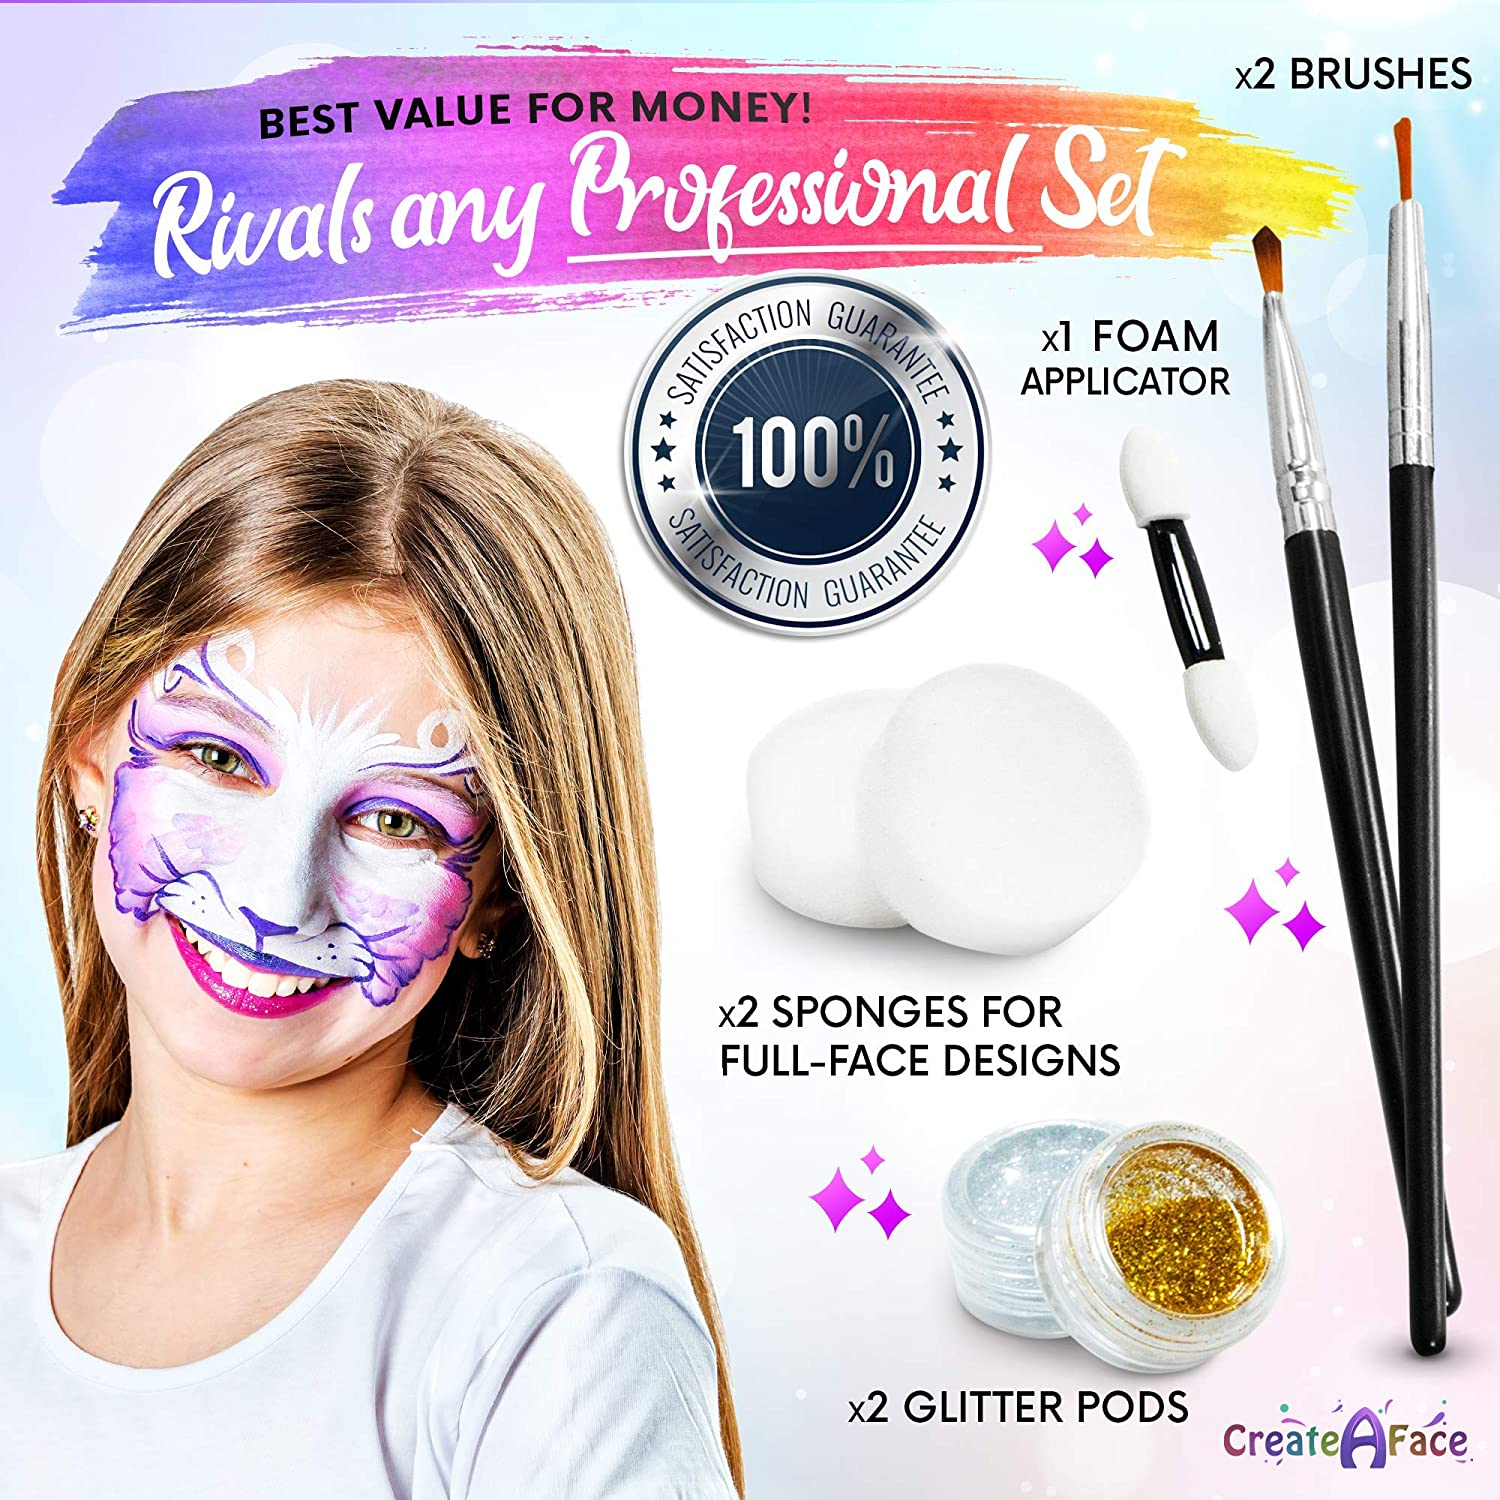 Face Paint Kit For Parties Paints 50 80 Faces With No Experience 8 Vivid Colors Glitter Brushes 32 Diy Stencils Ebook Safe Makeup Keeps The Kids Busy Happy Amazon Ca Home Kitchen